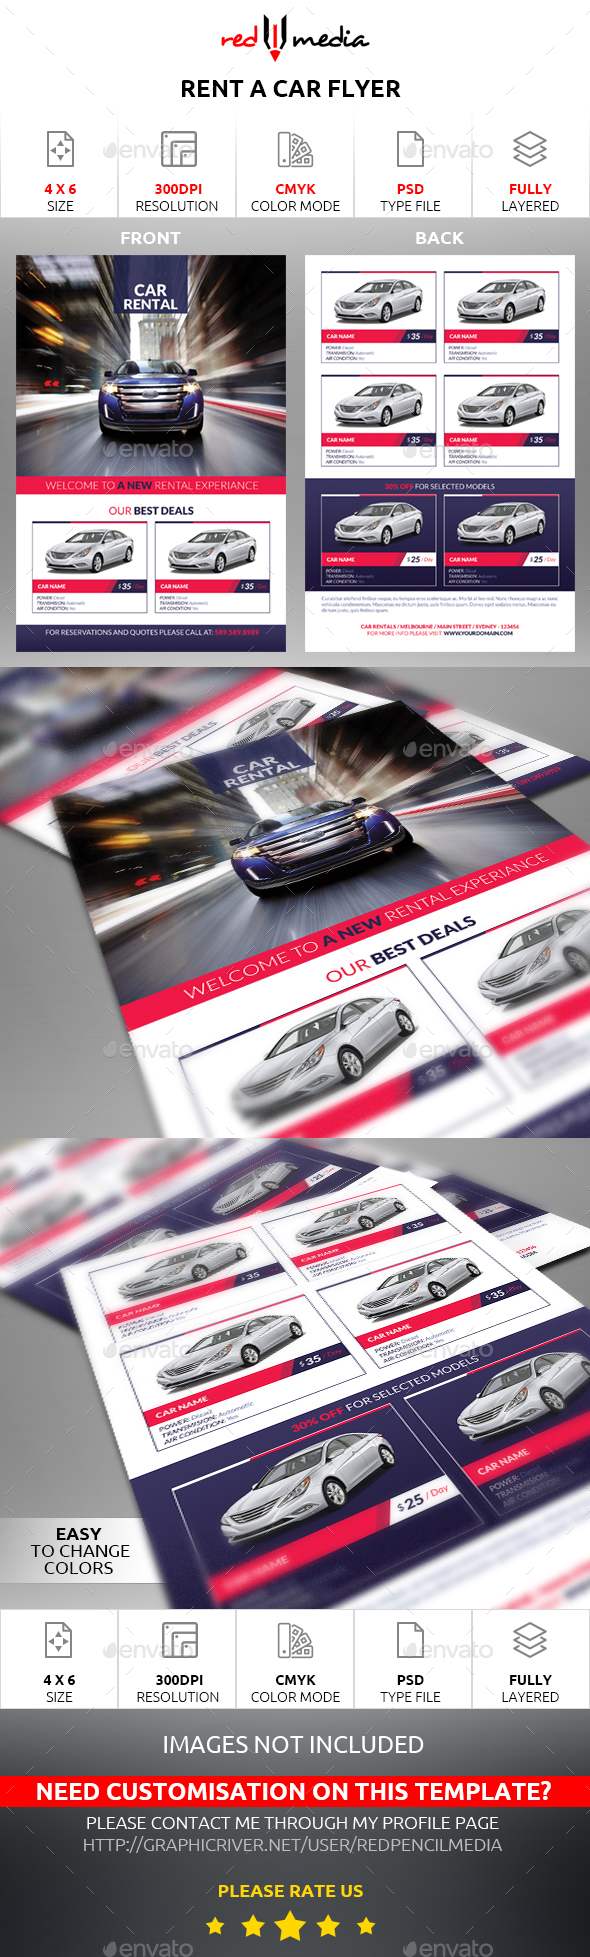 Rent a Car Flyer - Flyers Print Templates